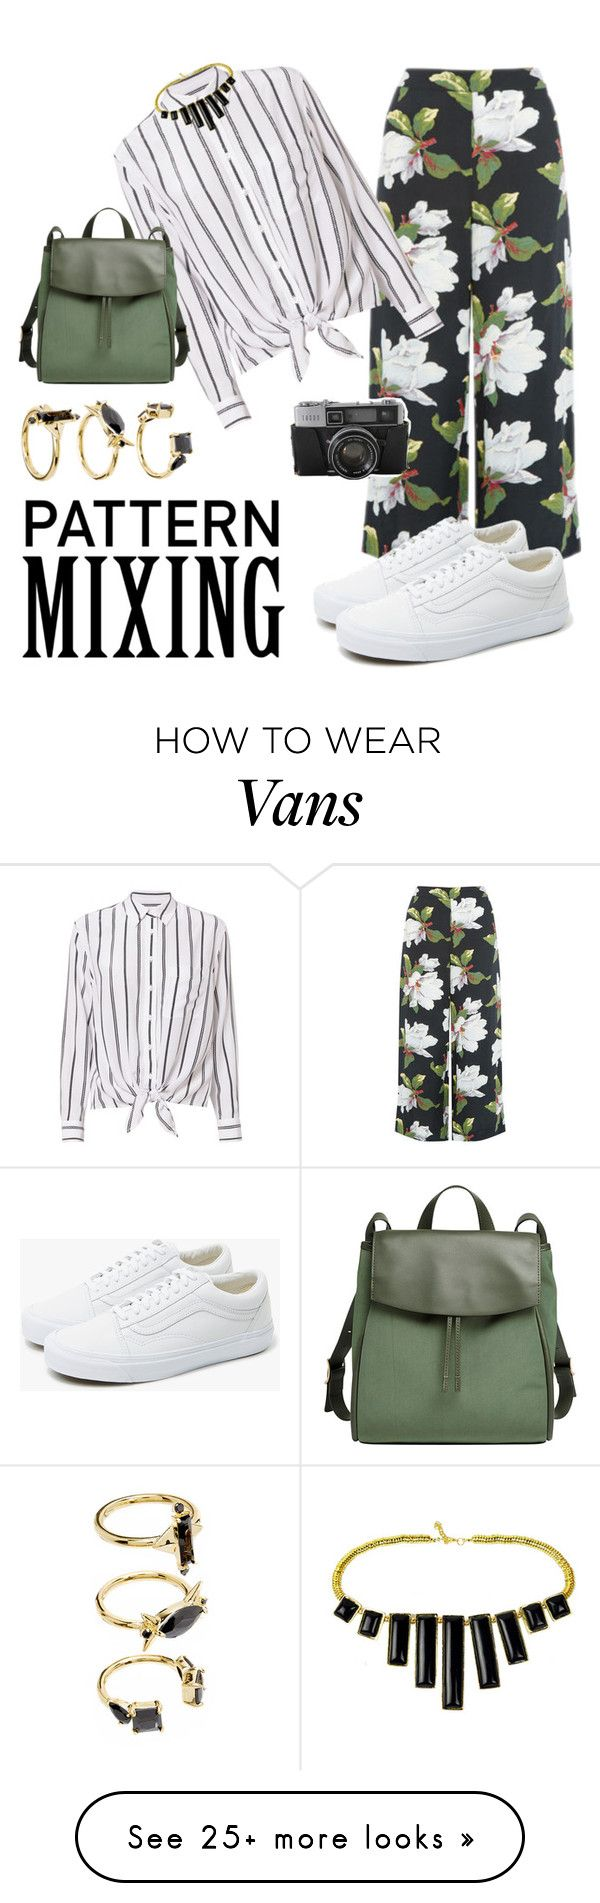 """""""mix it up """" by podangbethari on Polyvore featuring Warehouse, Equipment, Vans, Noir Jewelry and Skagen"""